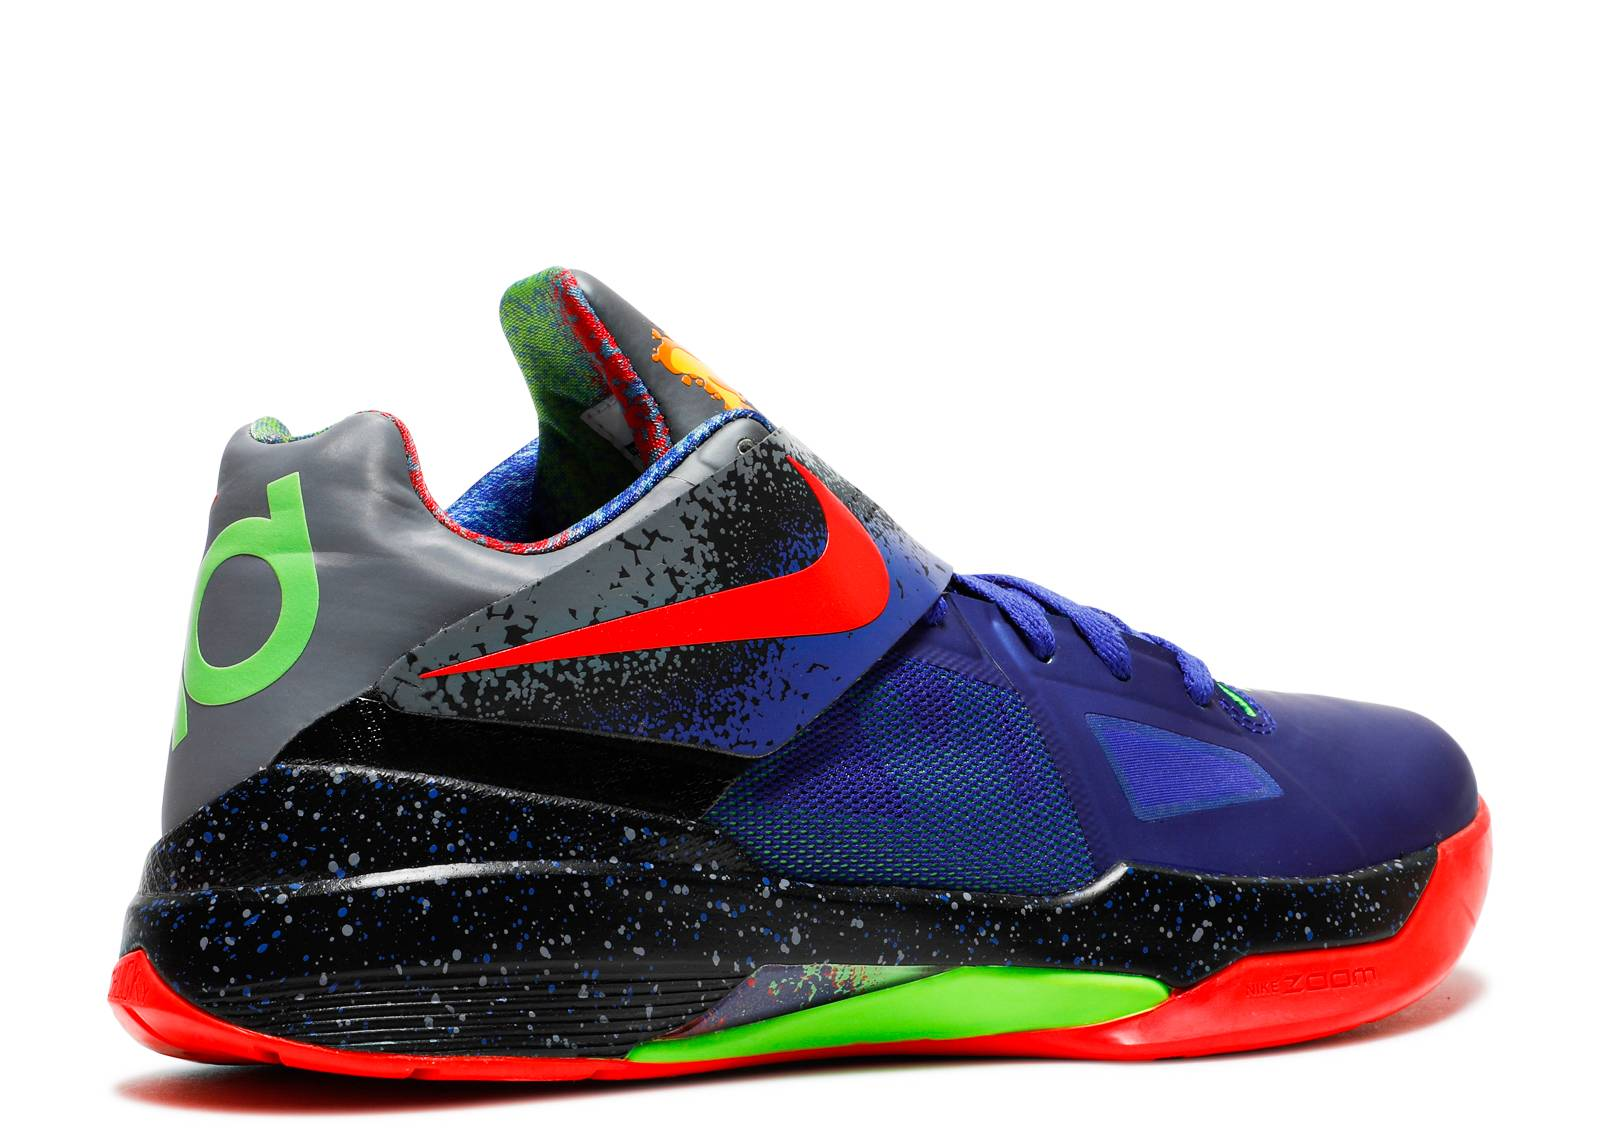 Nike Zoom KD IV 'Nerf' & 'Weatherman' Comparison. 0 /5 January 17, 0 by John Kim. Nike Zoom Kobe VII 'Nerf' Customs By Mache. 0.